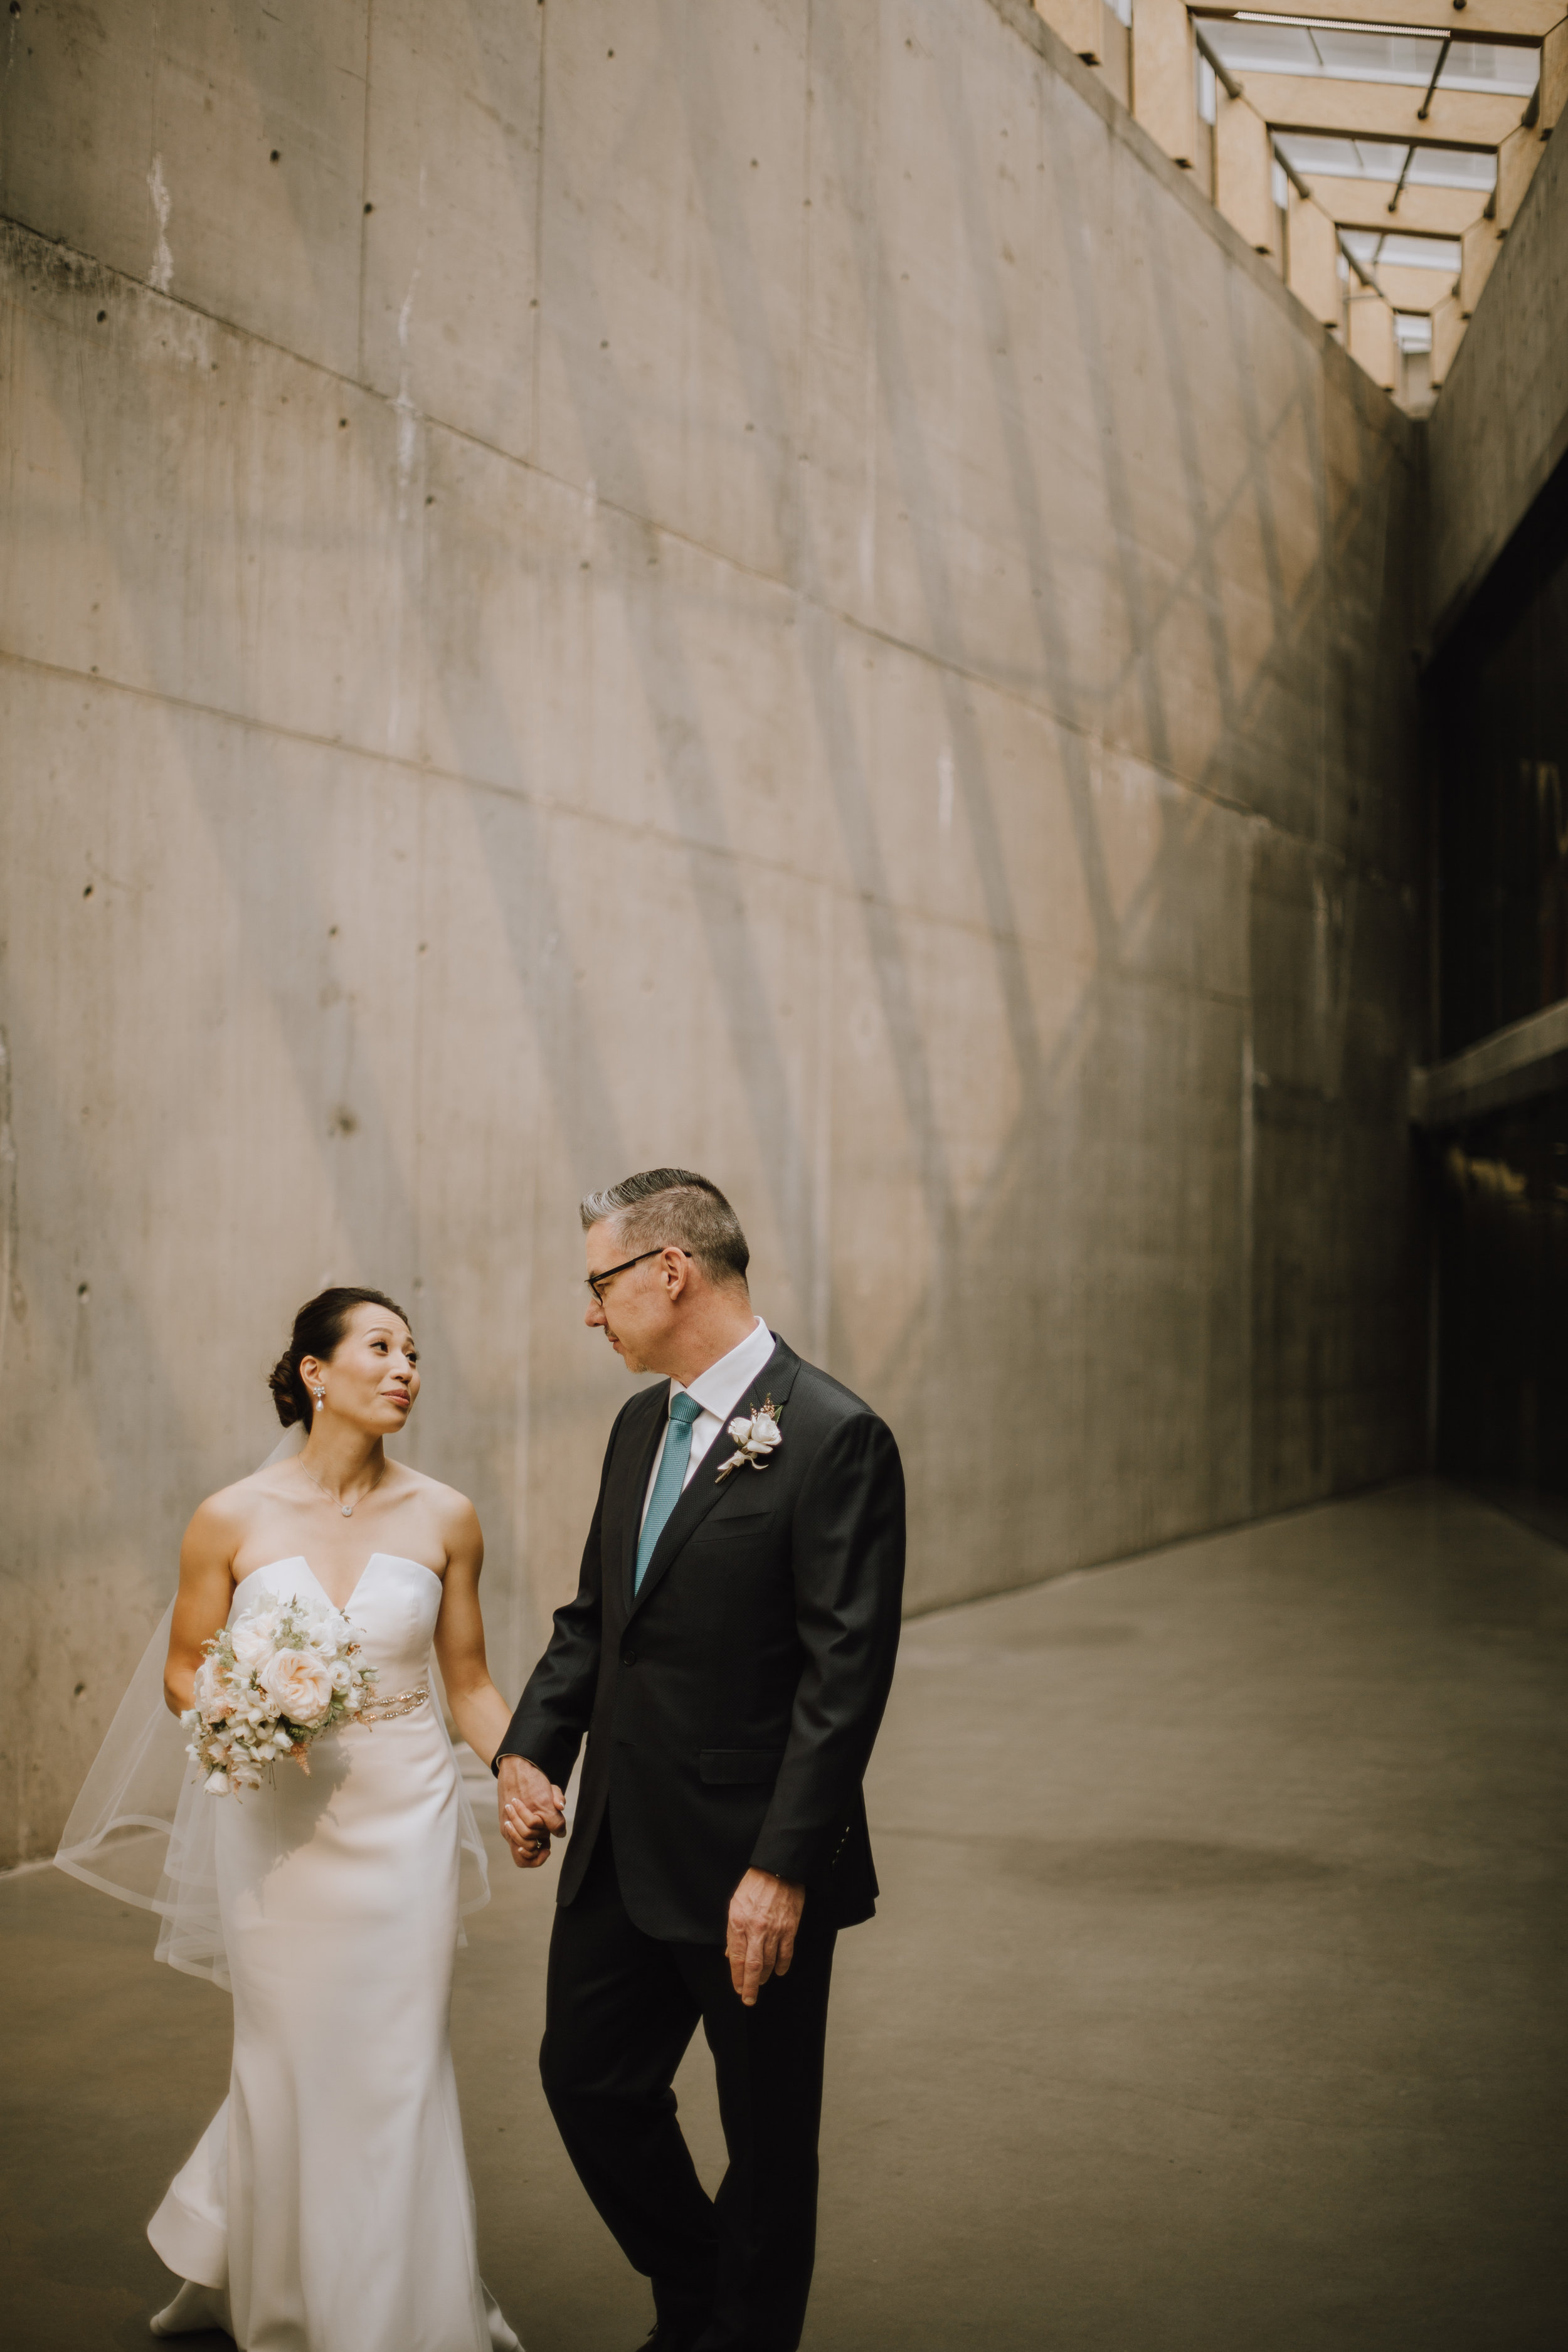 Mark + Mabel 3 - Bridal Portraits-89.jpg